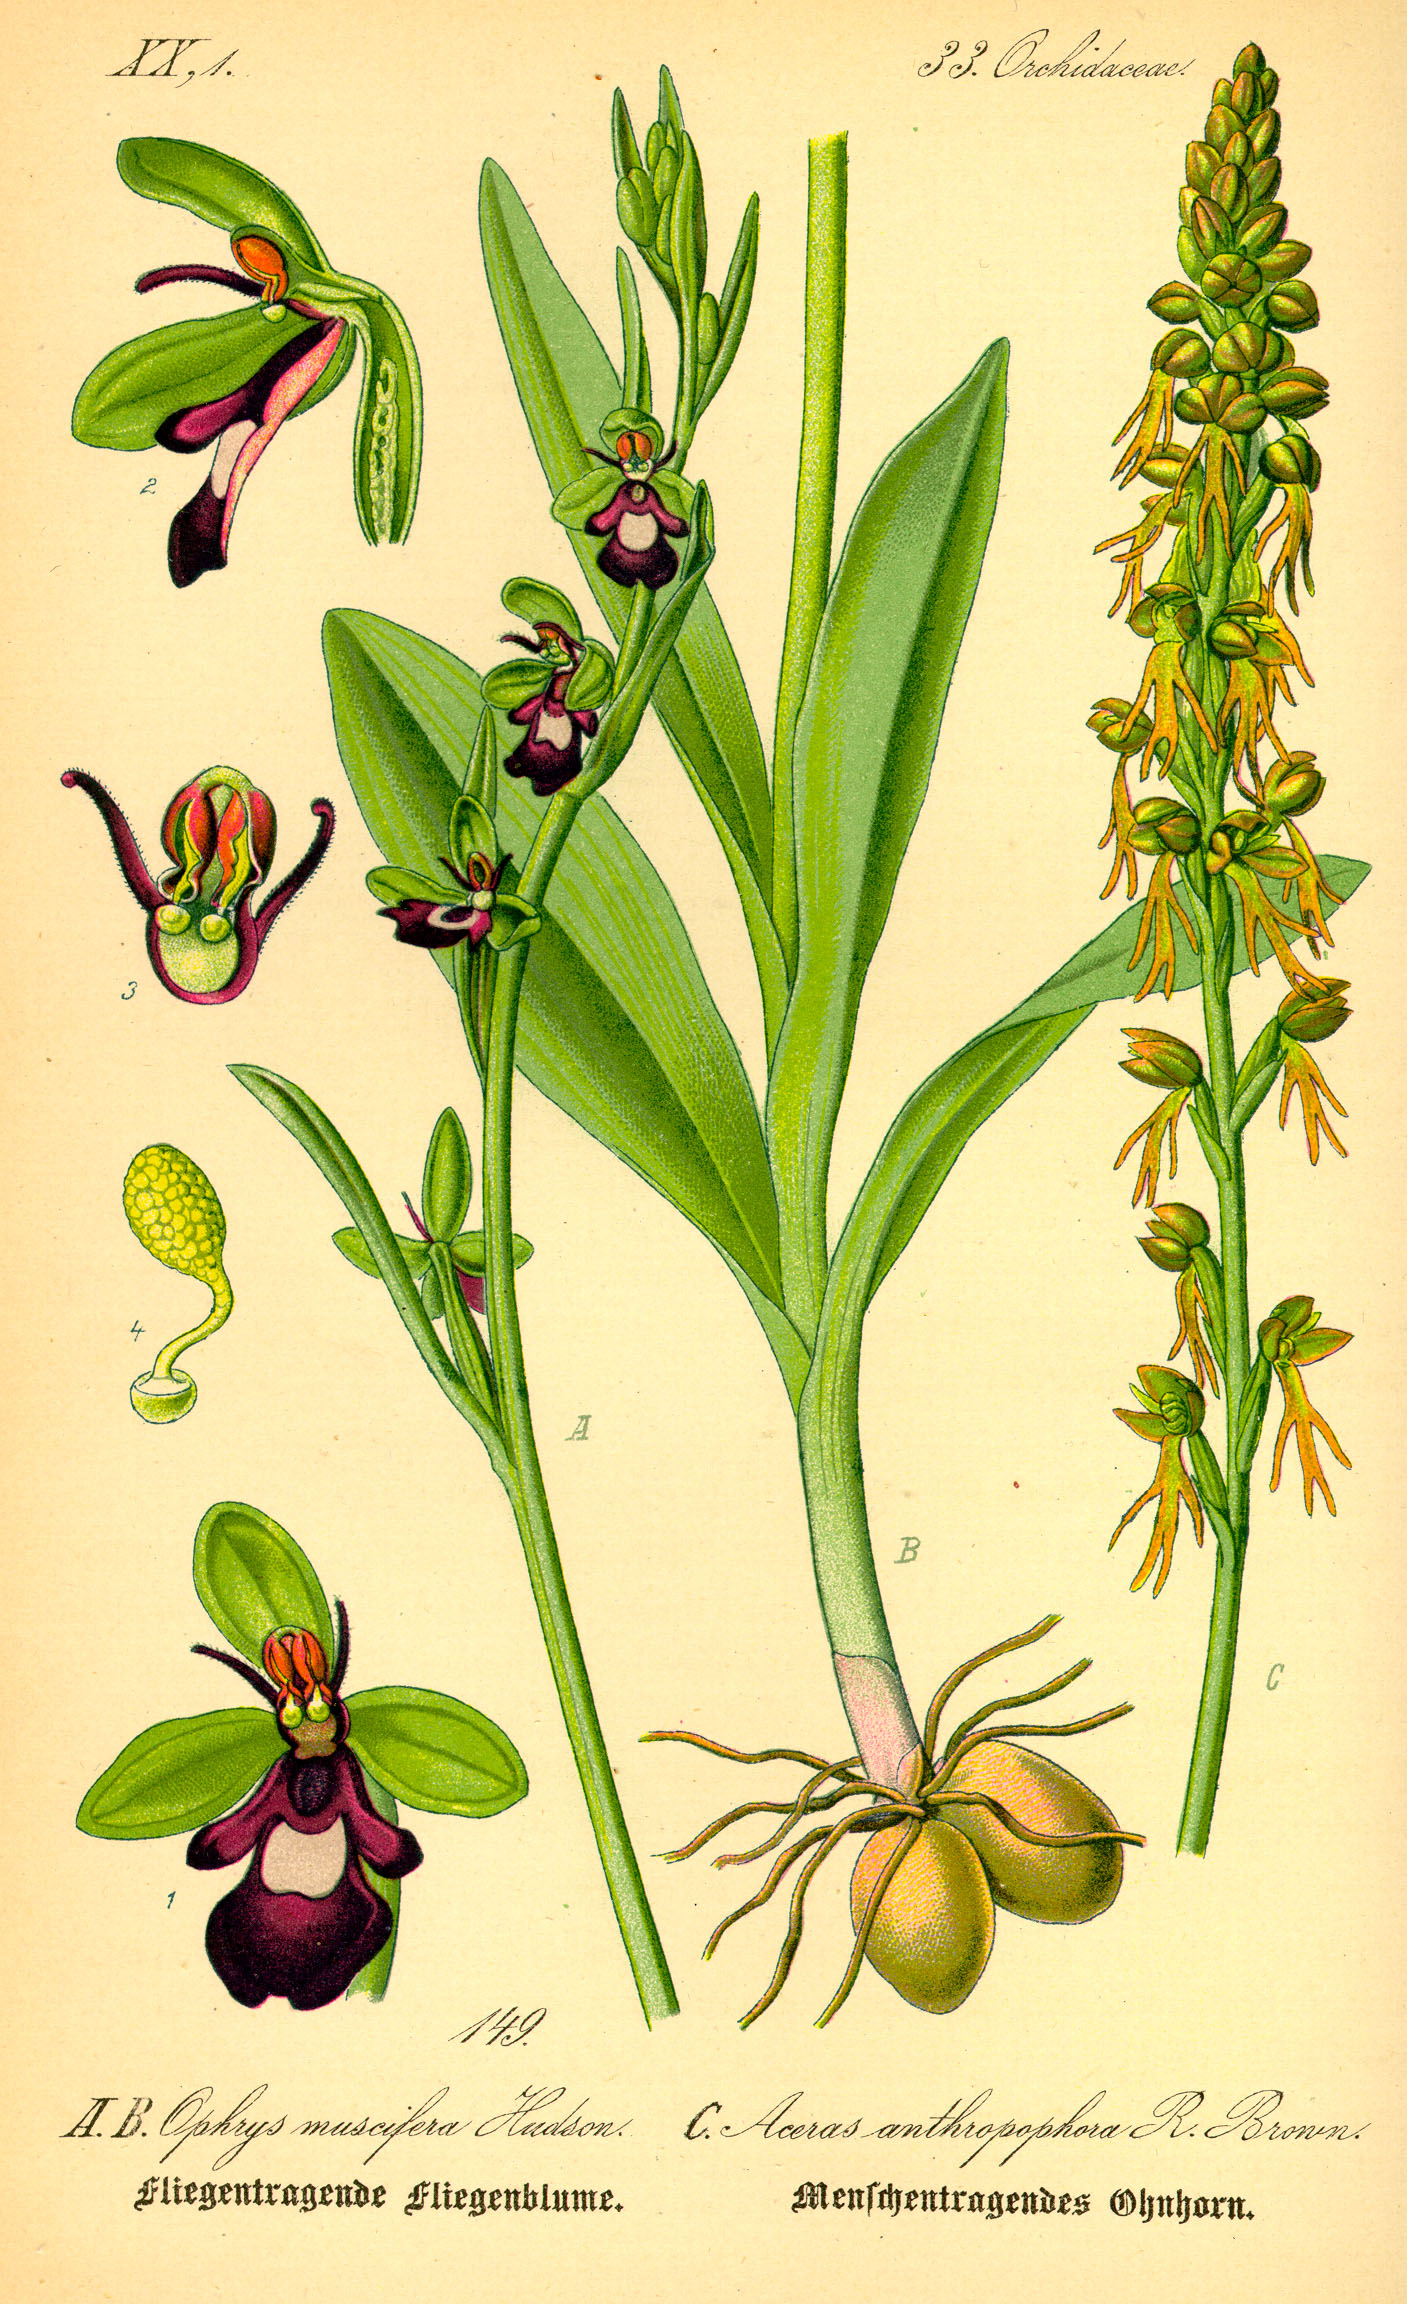 http://images4.wikia.nocookie.net/__cb20071210005219/orchids/en/images/c/c5/Illustration_Ophrys_incectifera0.jpg